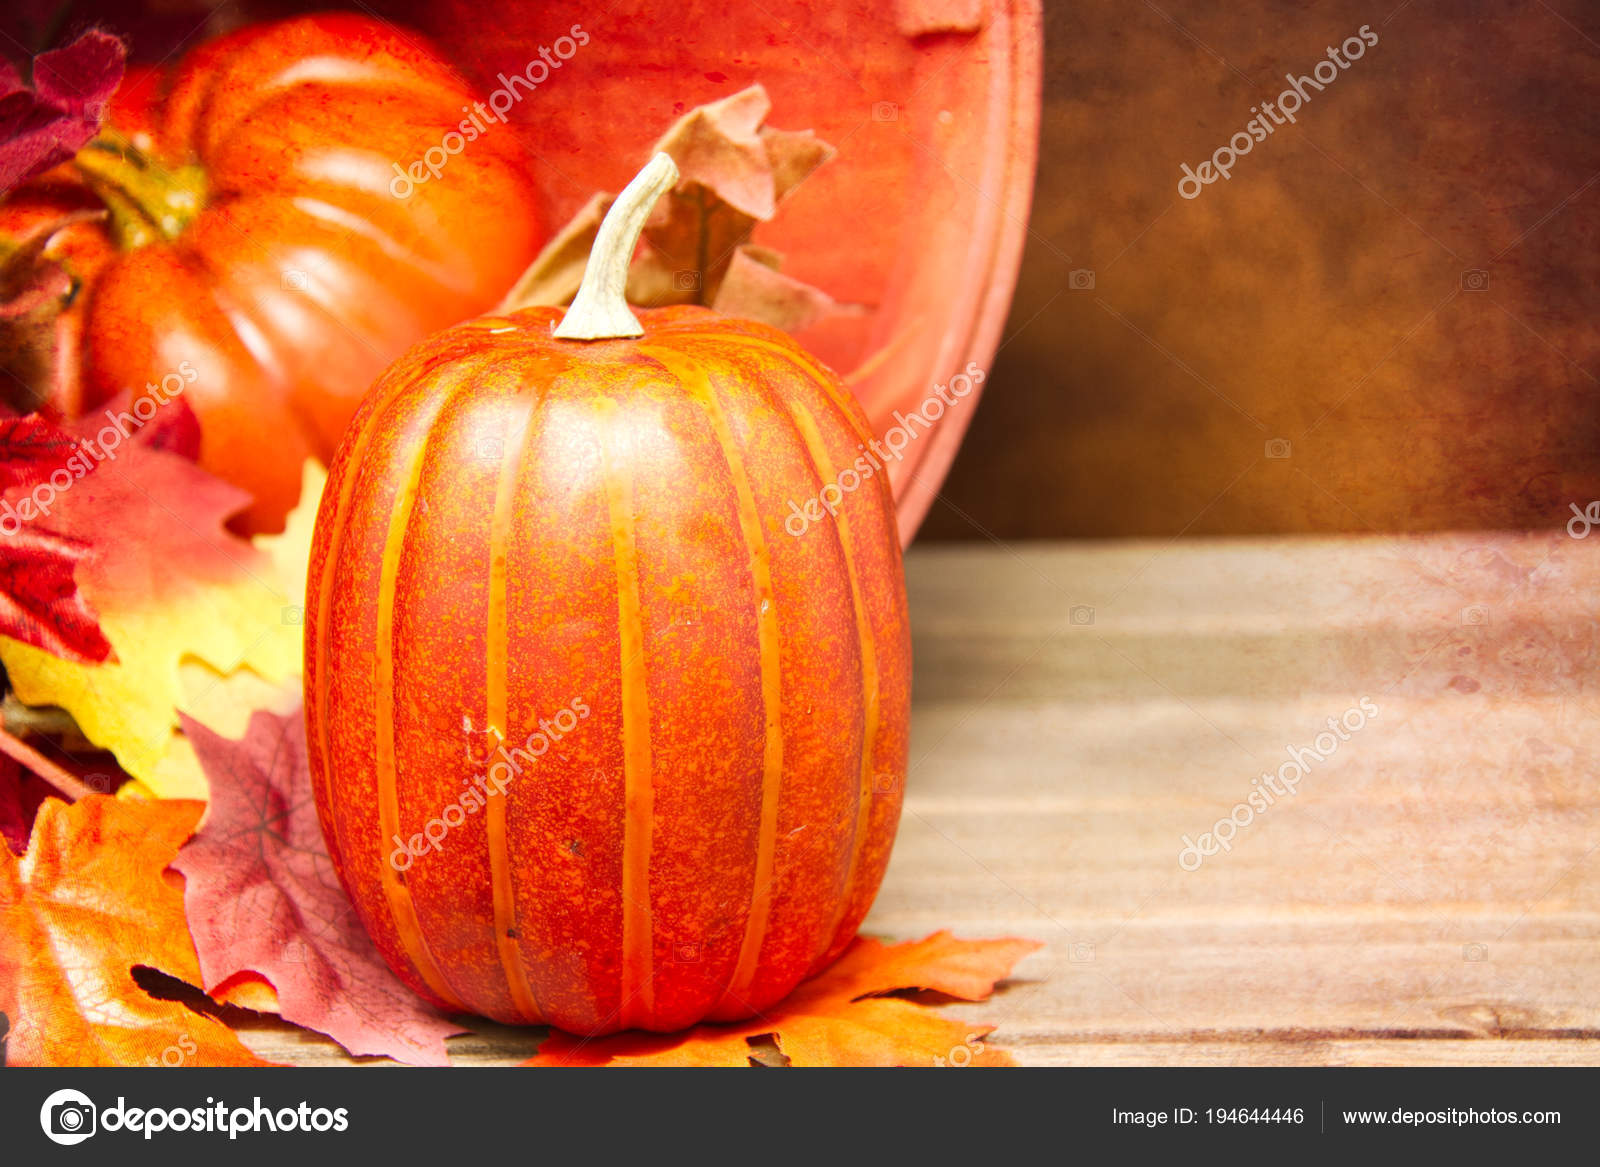 fall themed background featuring small pumpkin focus out focus